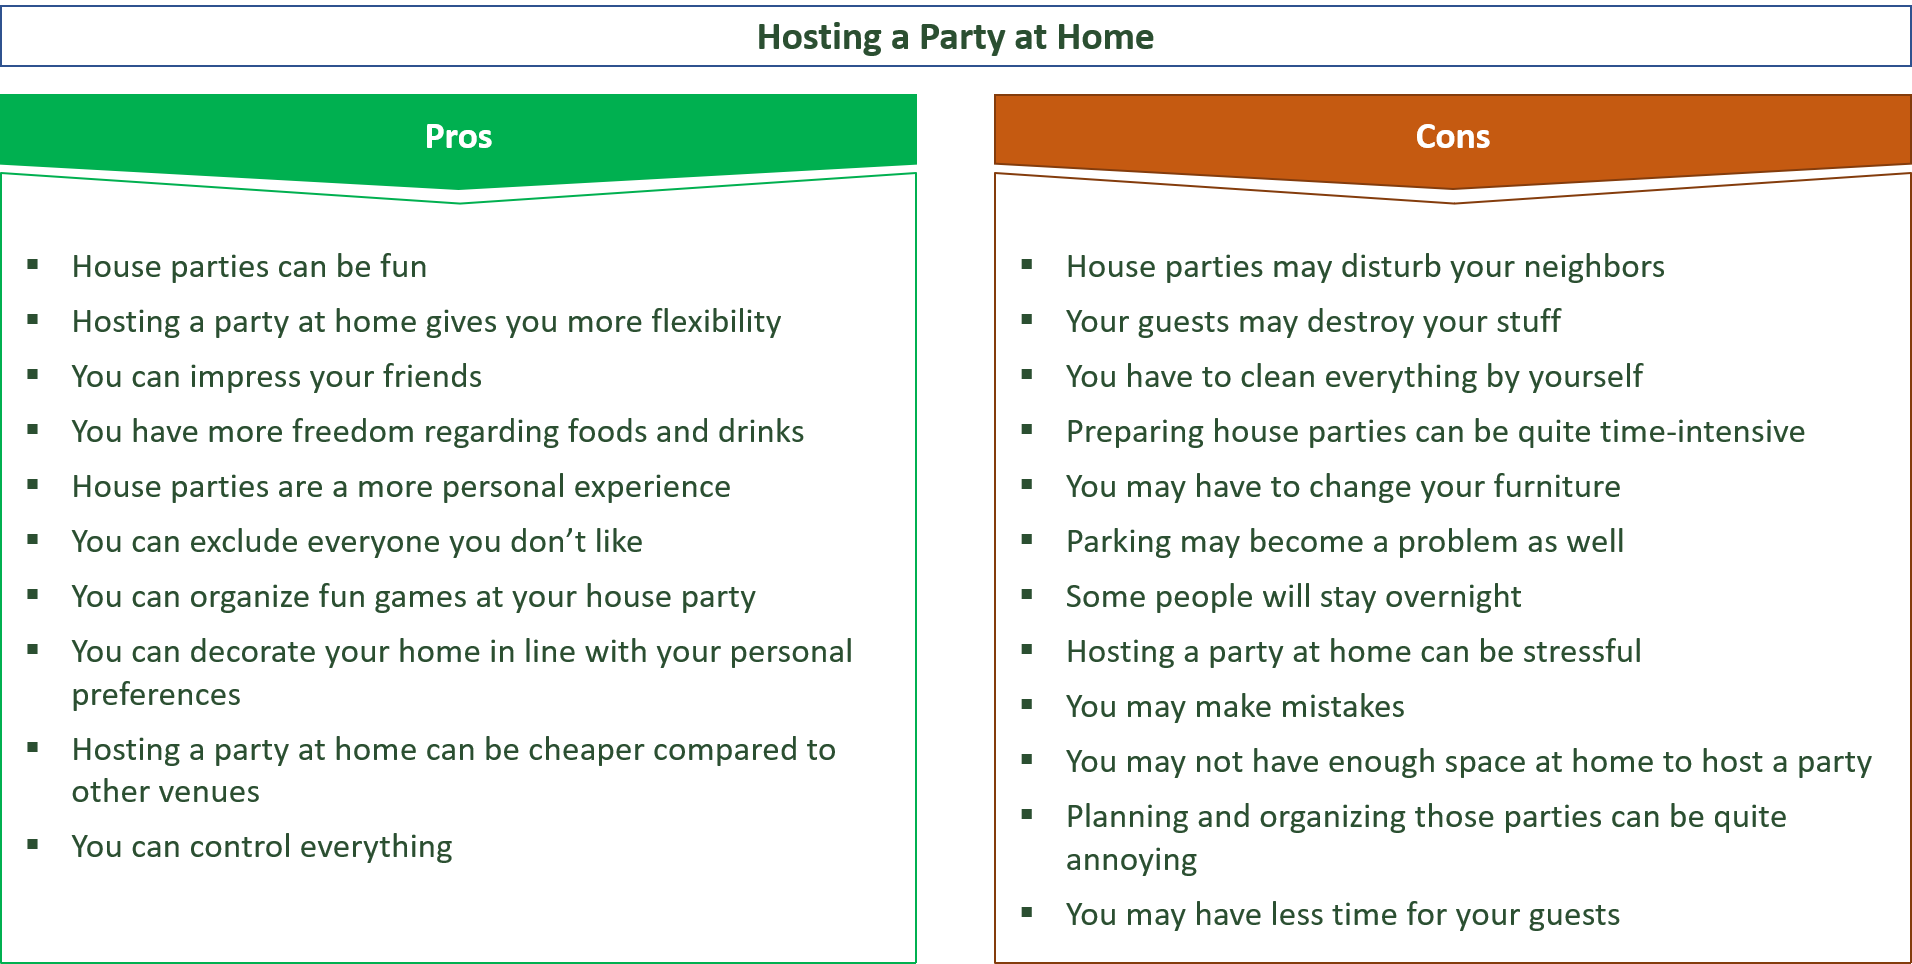 advantages and disadvantages of hosting a party at home vs. party in venues